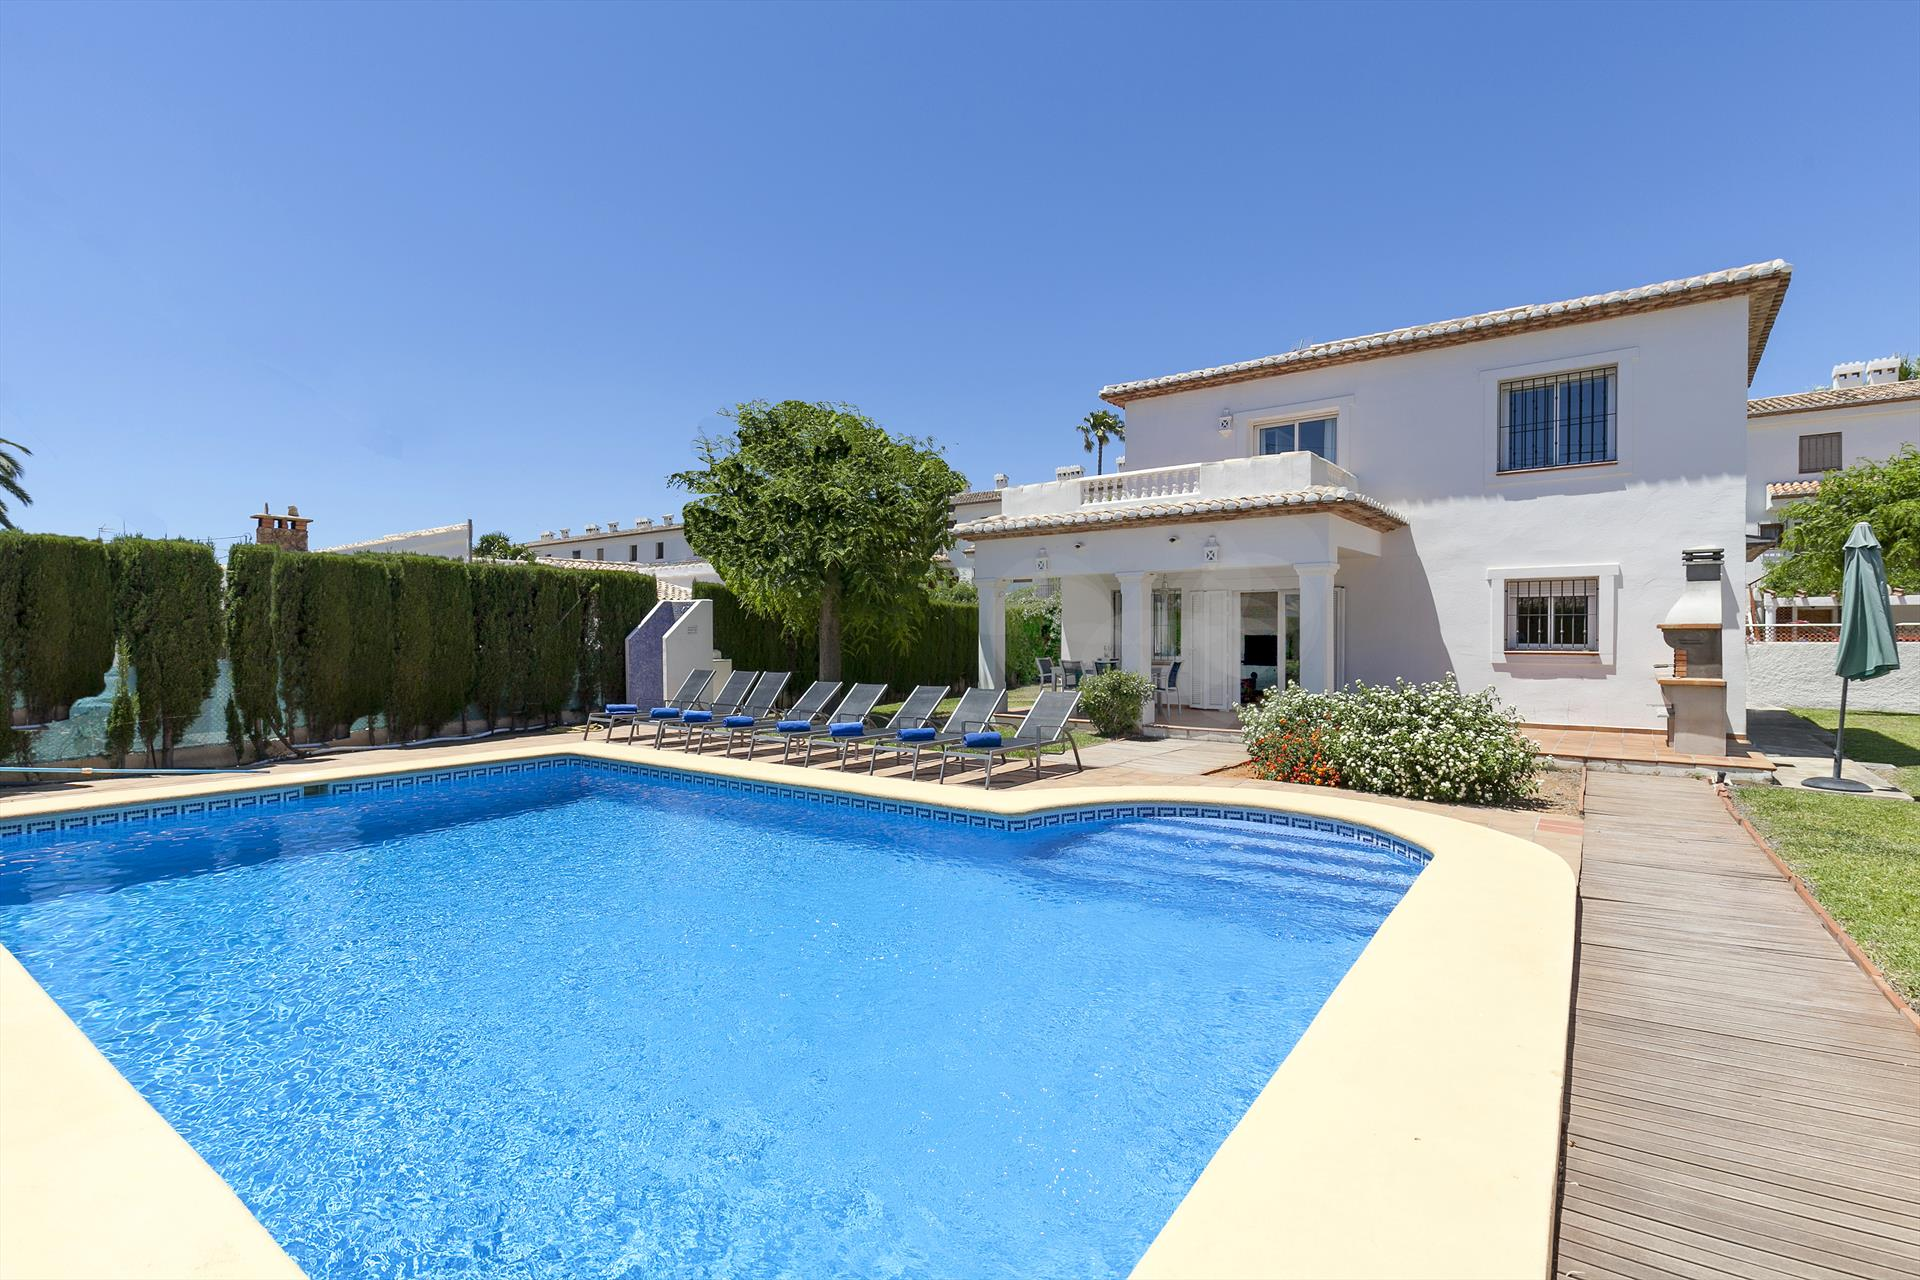 Villa Vicenta, Villa  with private pool in Denia, on the Costa Blanca, Spain for 8 persons...